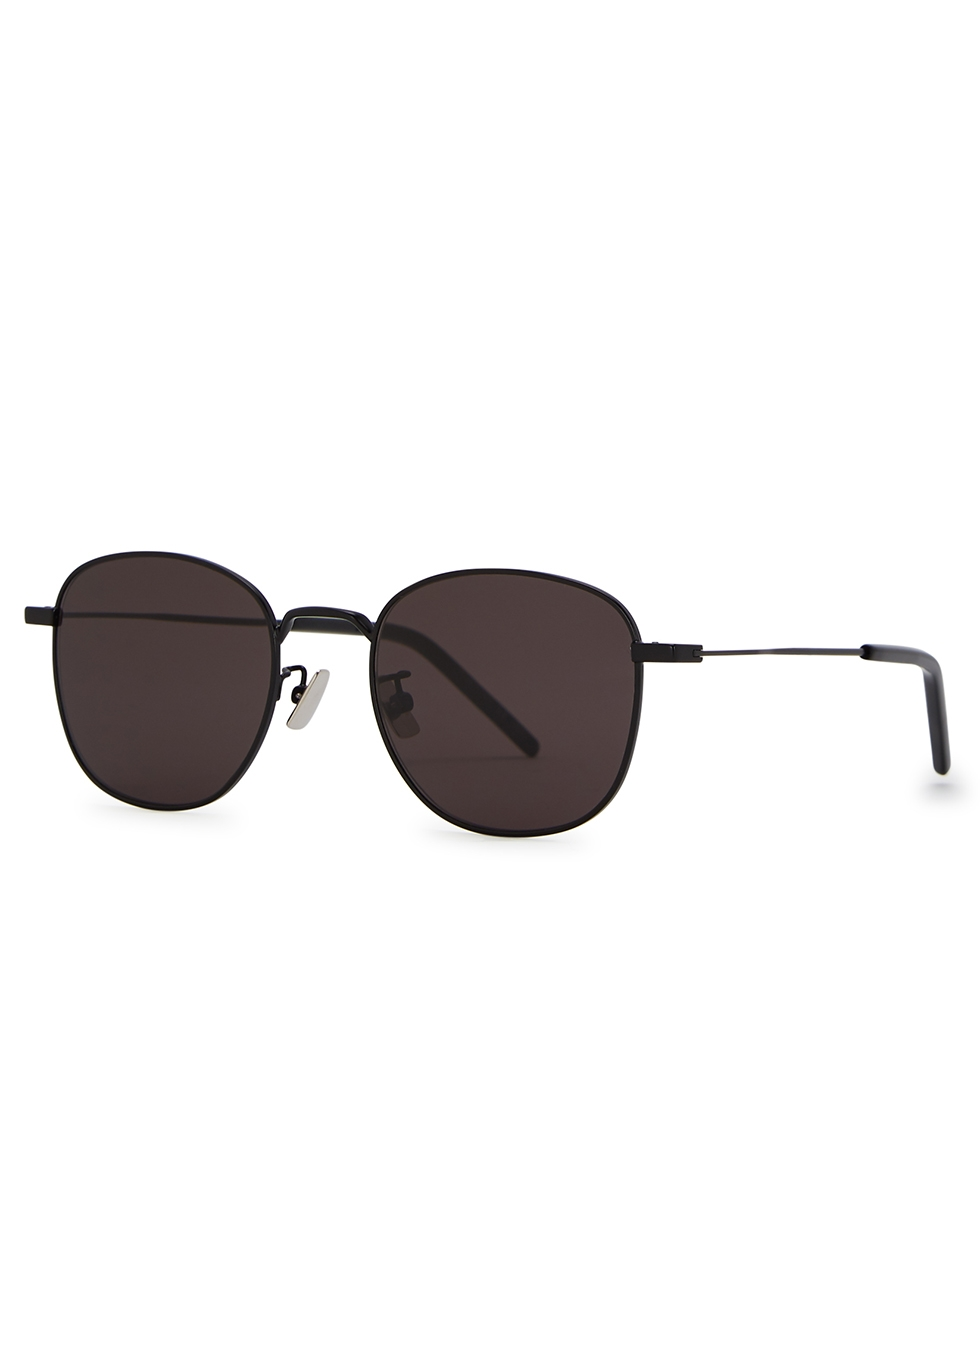 42006a3117 Women s Designer Sunglasses and Eyewear - Harvey Nichols